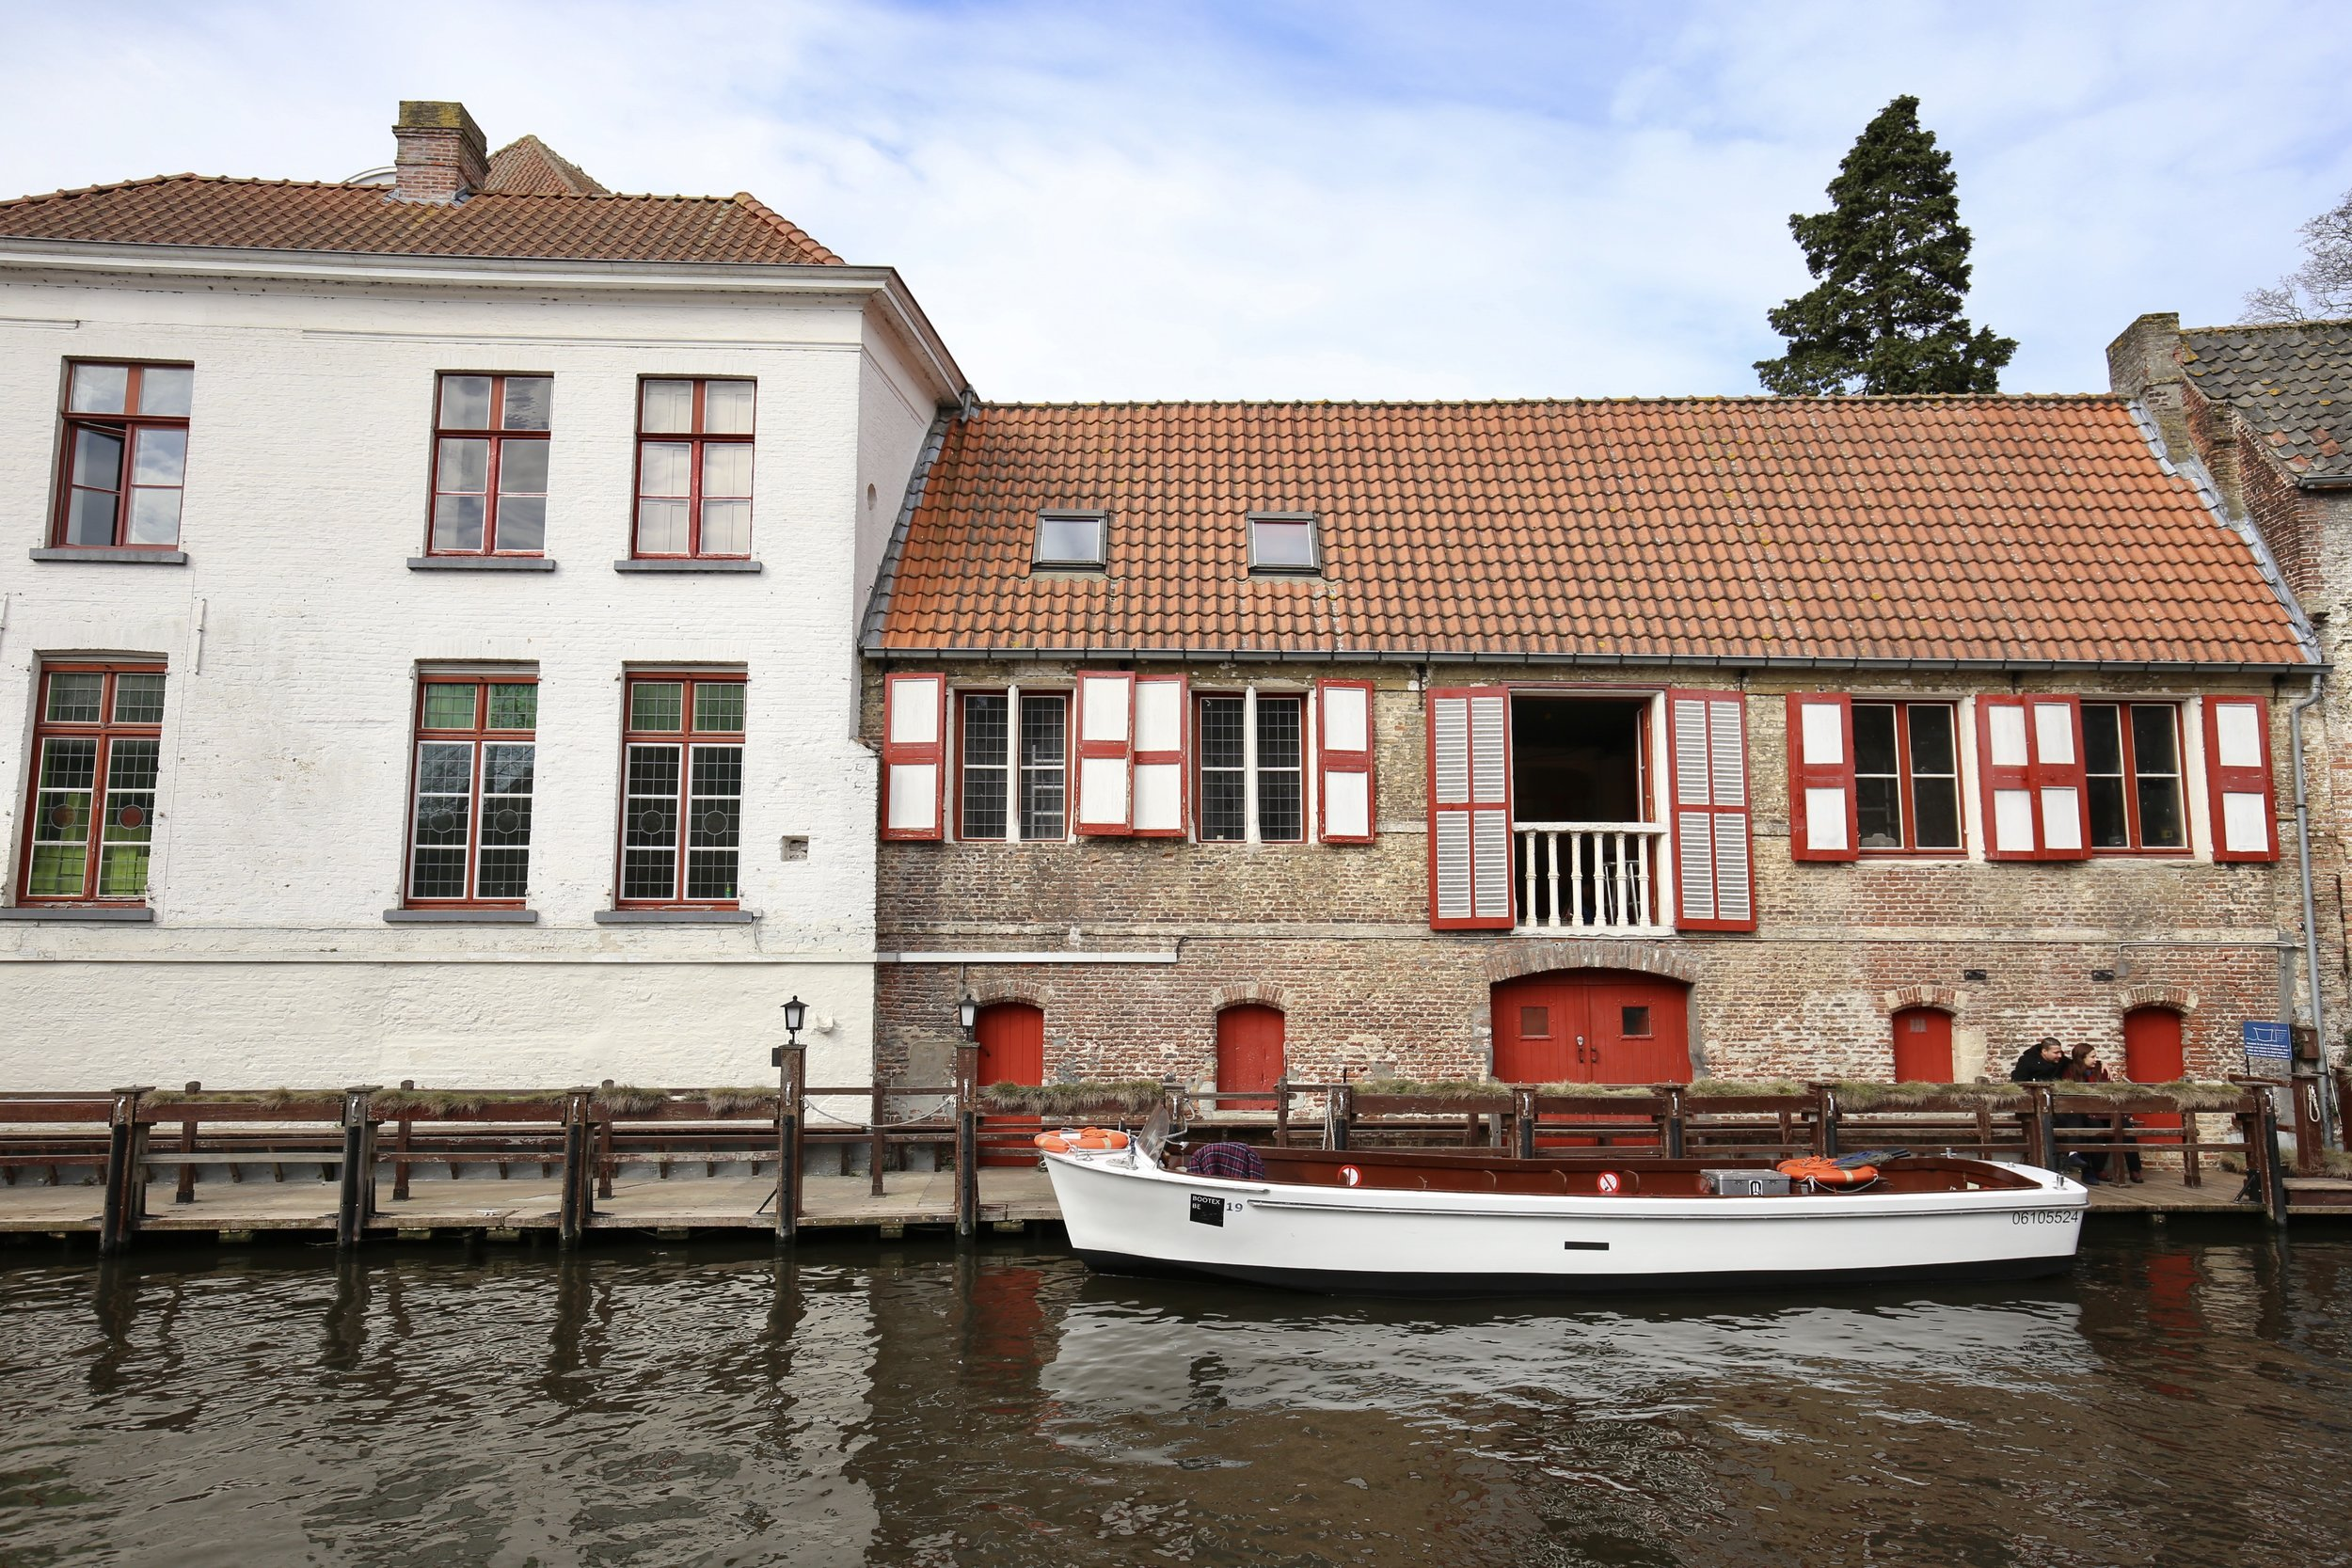 A brick house with red shutters and a small boat in the canal.